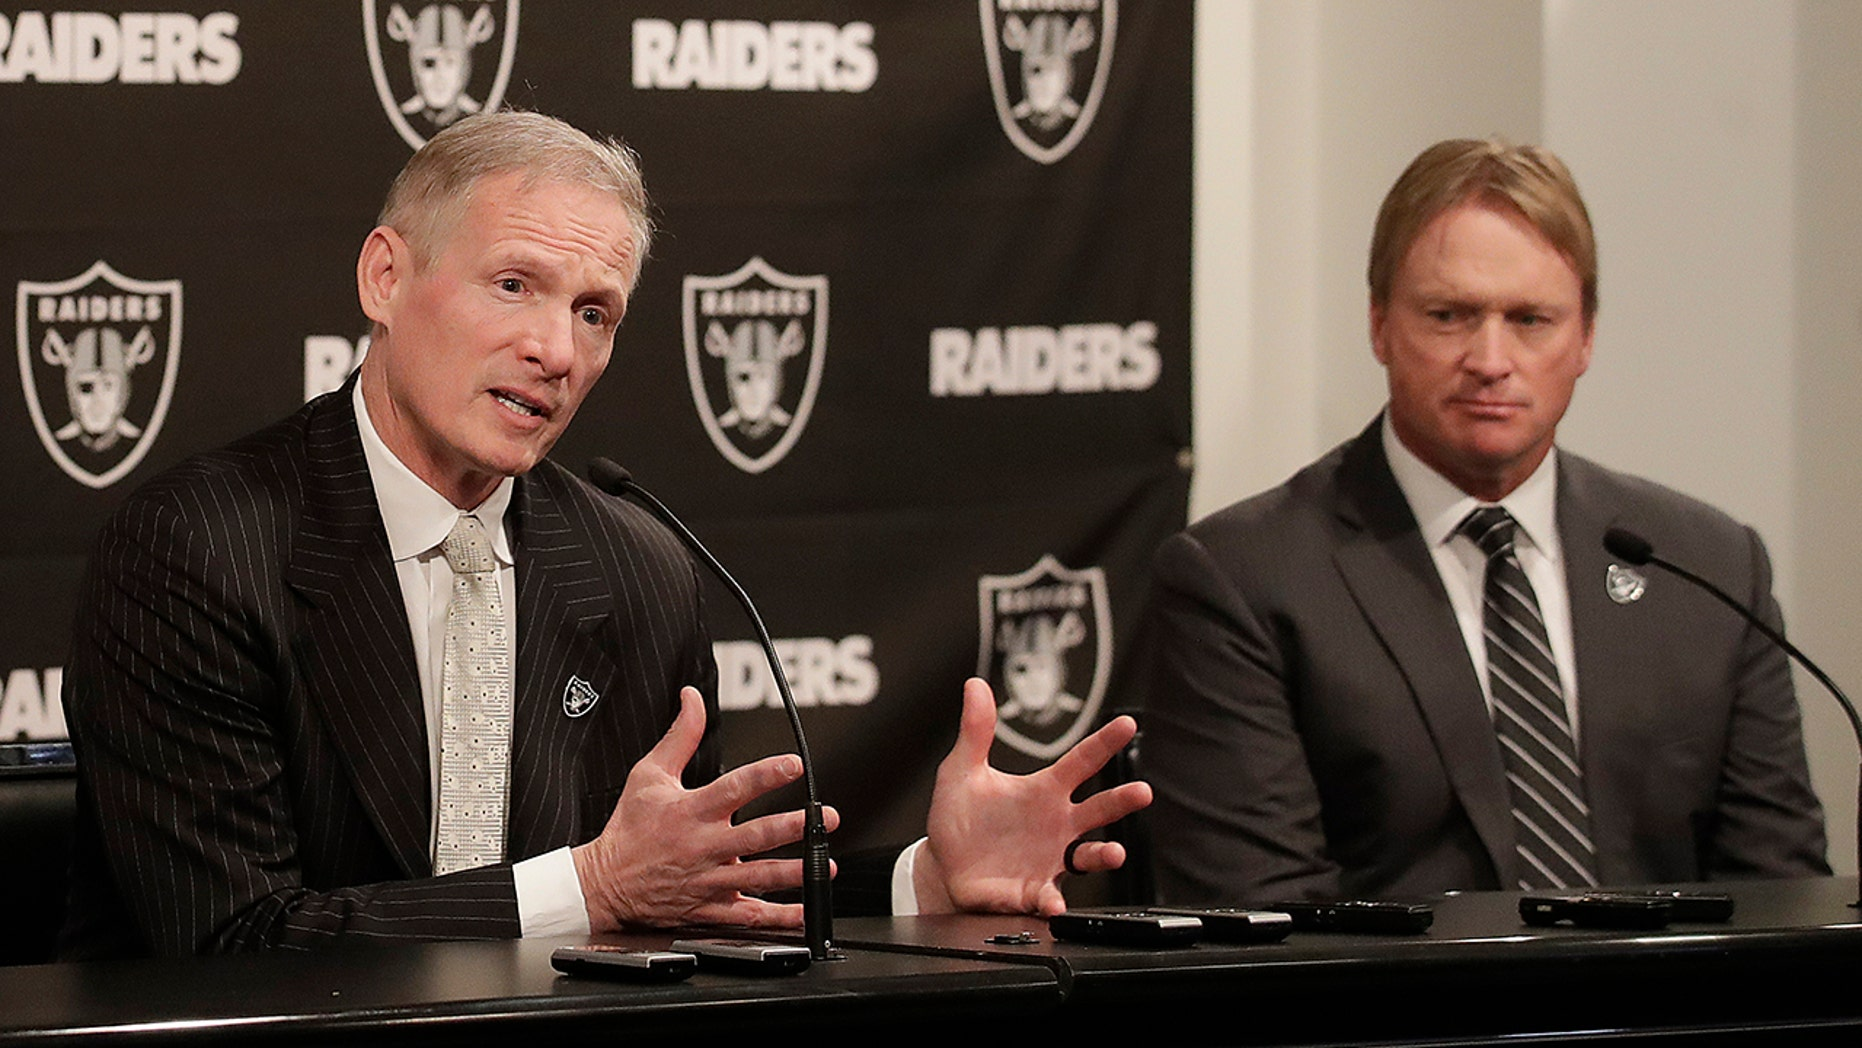 In this Dec. 31, 2018, file photo, Mike Mayock speaks as Oakland Raiders head coach Jon Gruden listens at a news conference announcing Mayock as the general manager at the team's headquarters in Oakland, Calif. (AP Photo/Jeff Chiu, File)